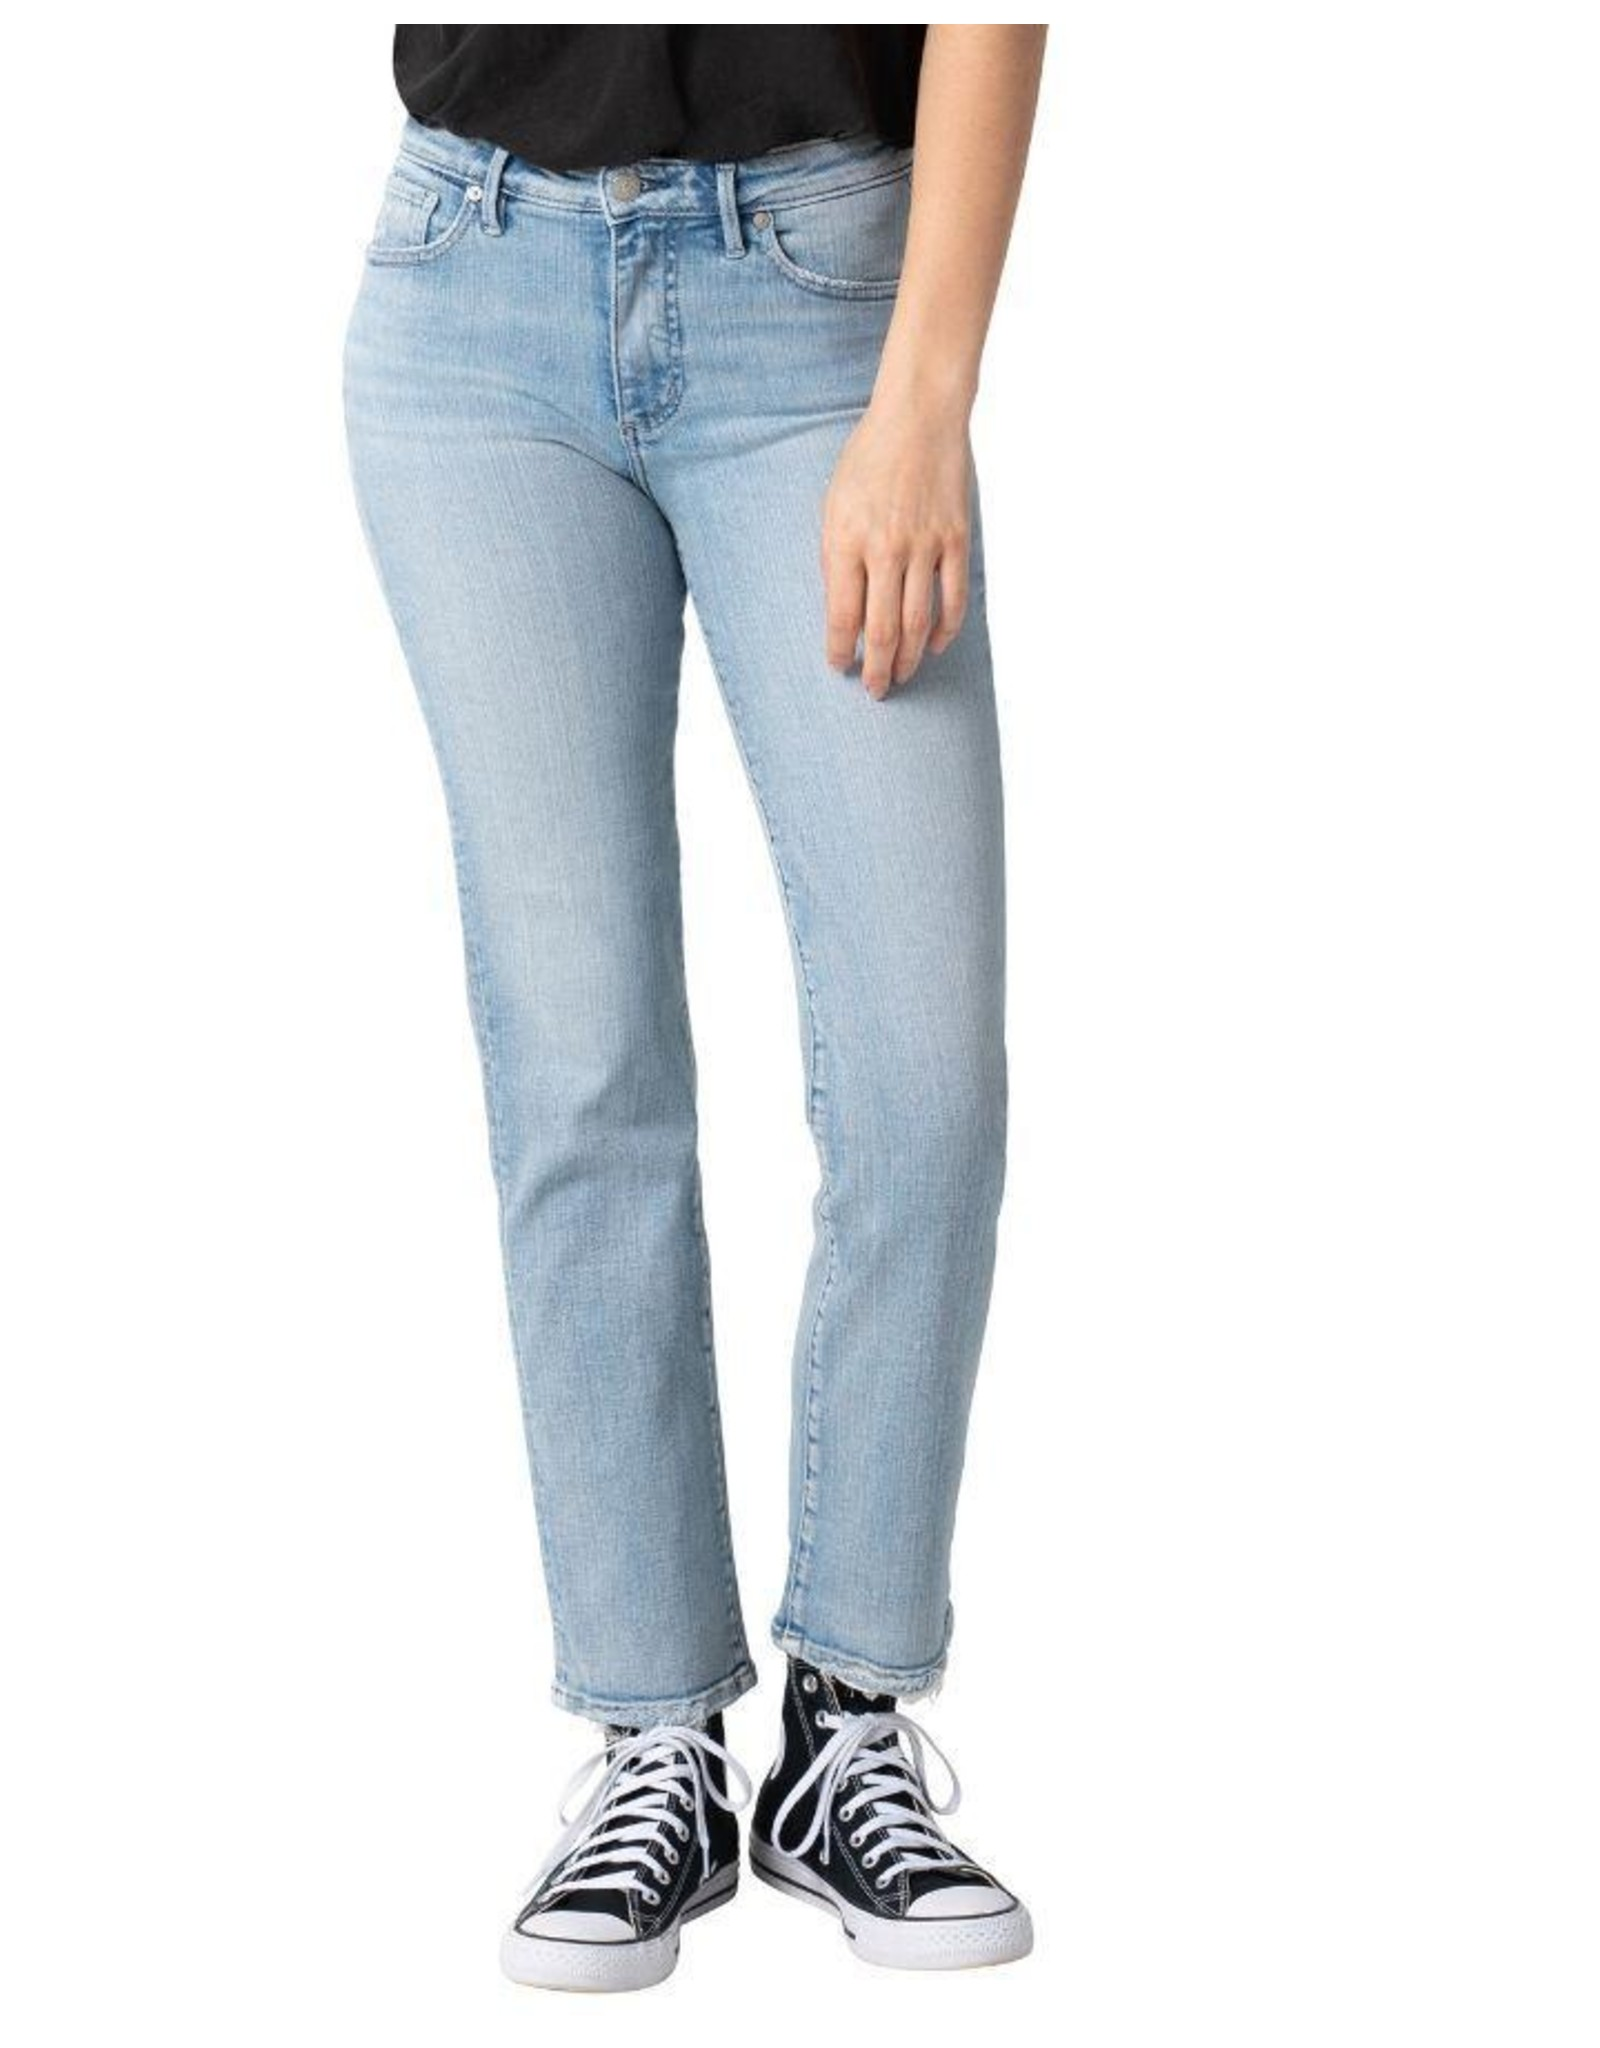 Silver Jeans - Isbister Slim|Straight